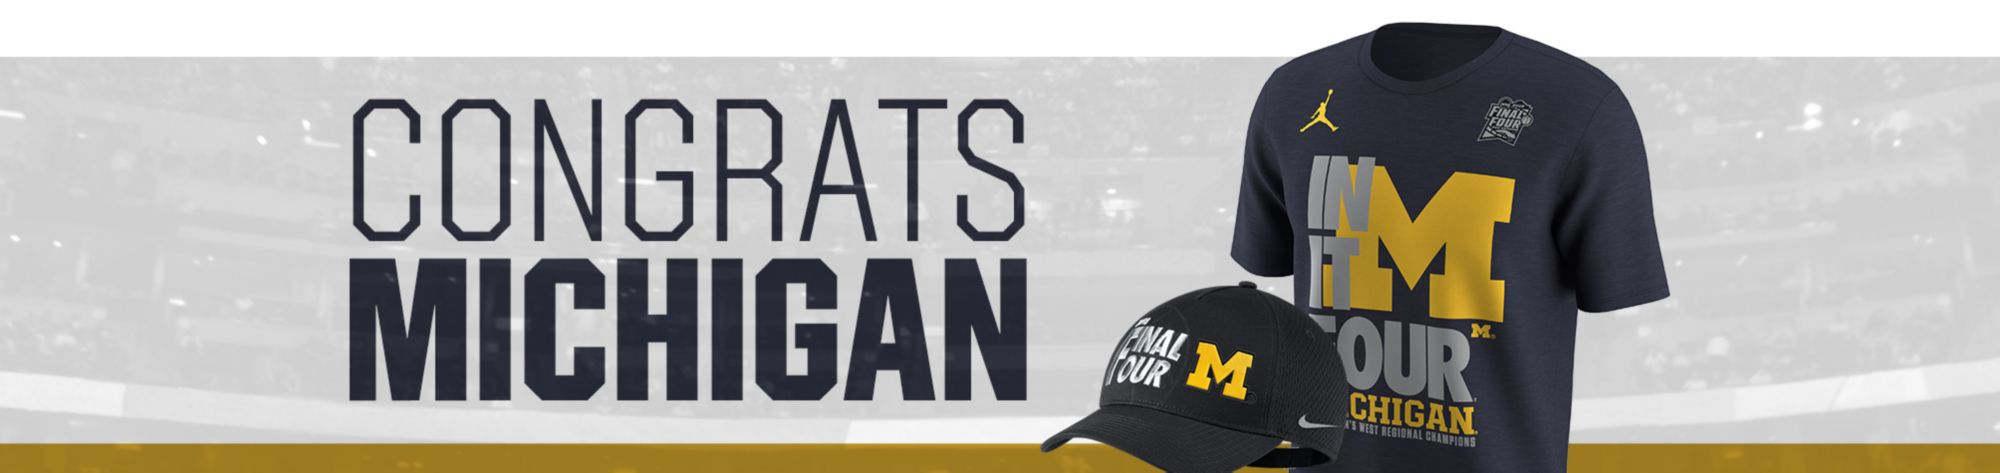 Congrats Michigan